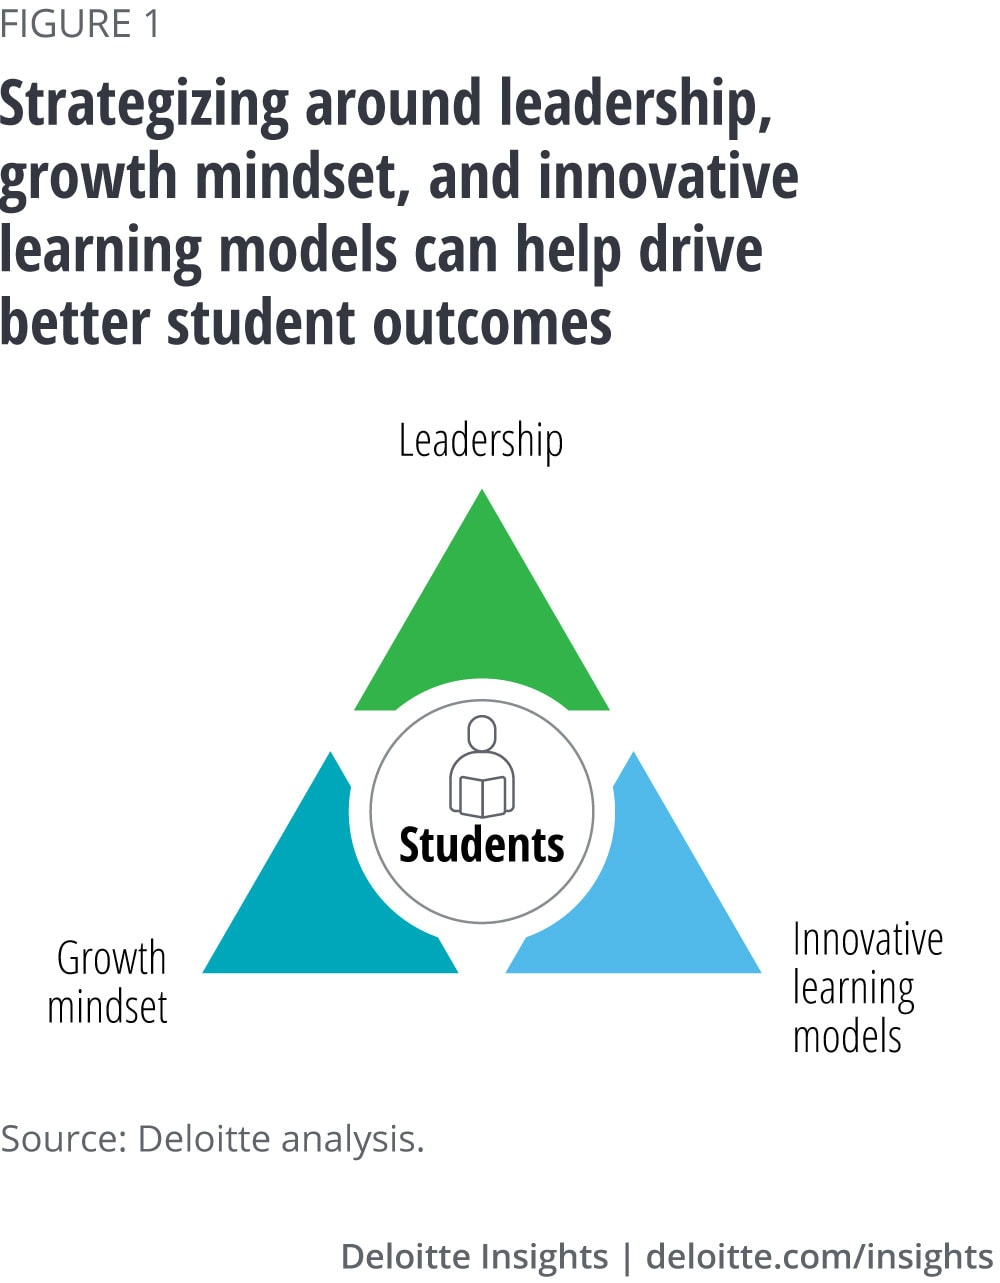 Strategizing around leadership, growth mindset, and innovative learning models can help drive better student outcomes